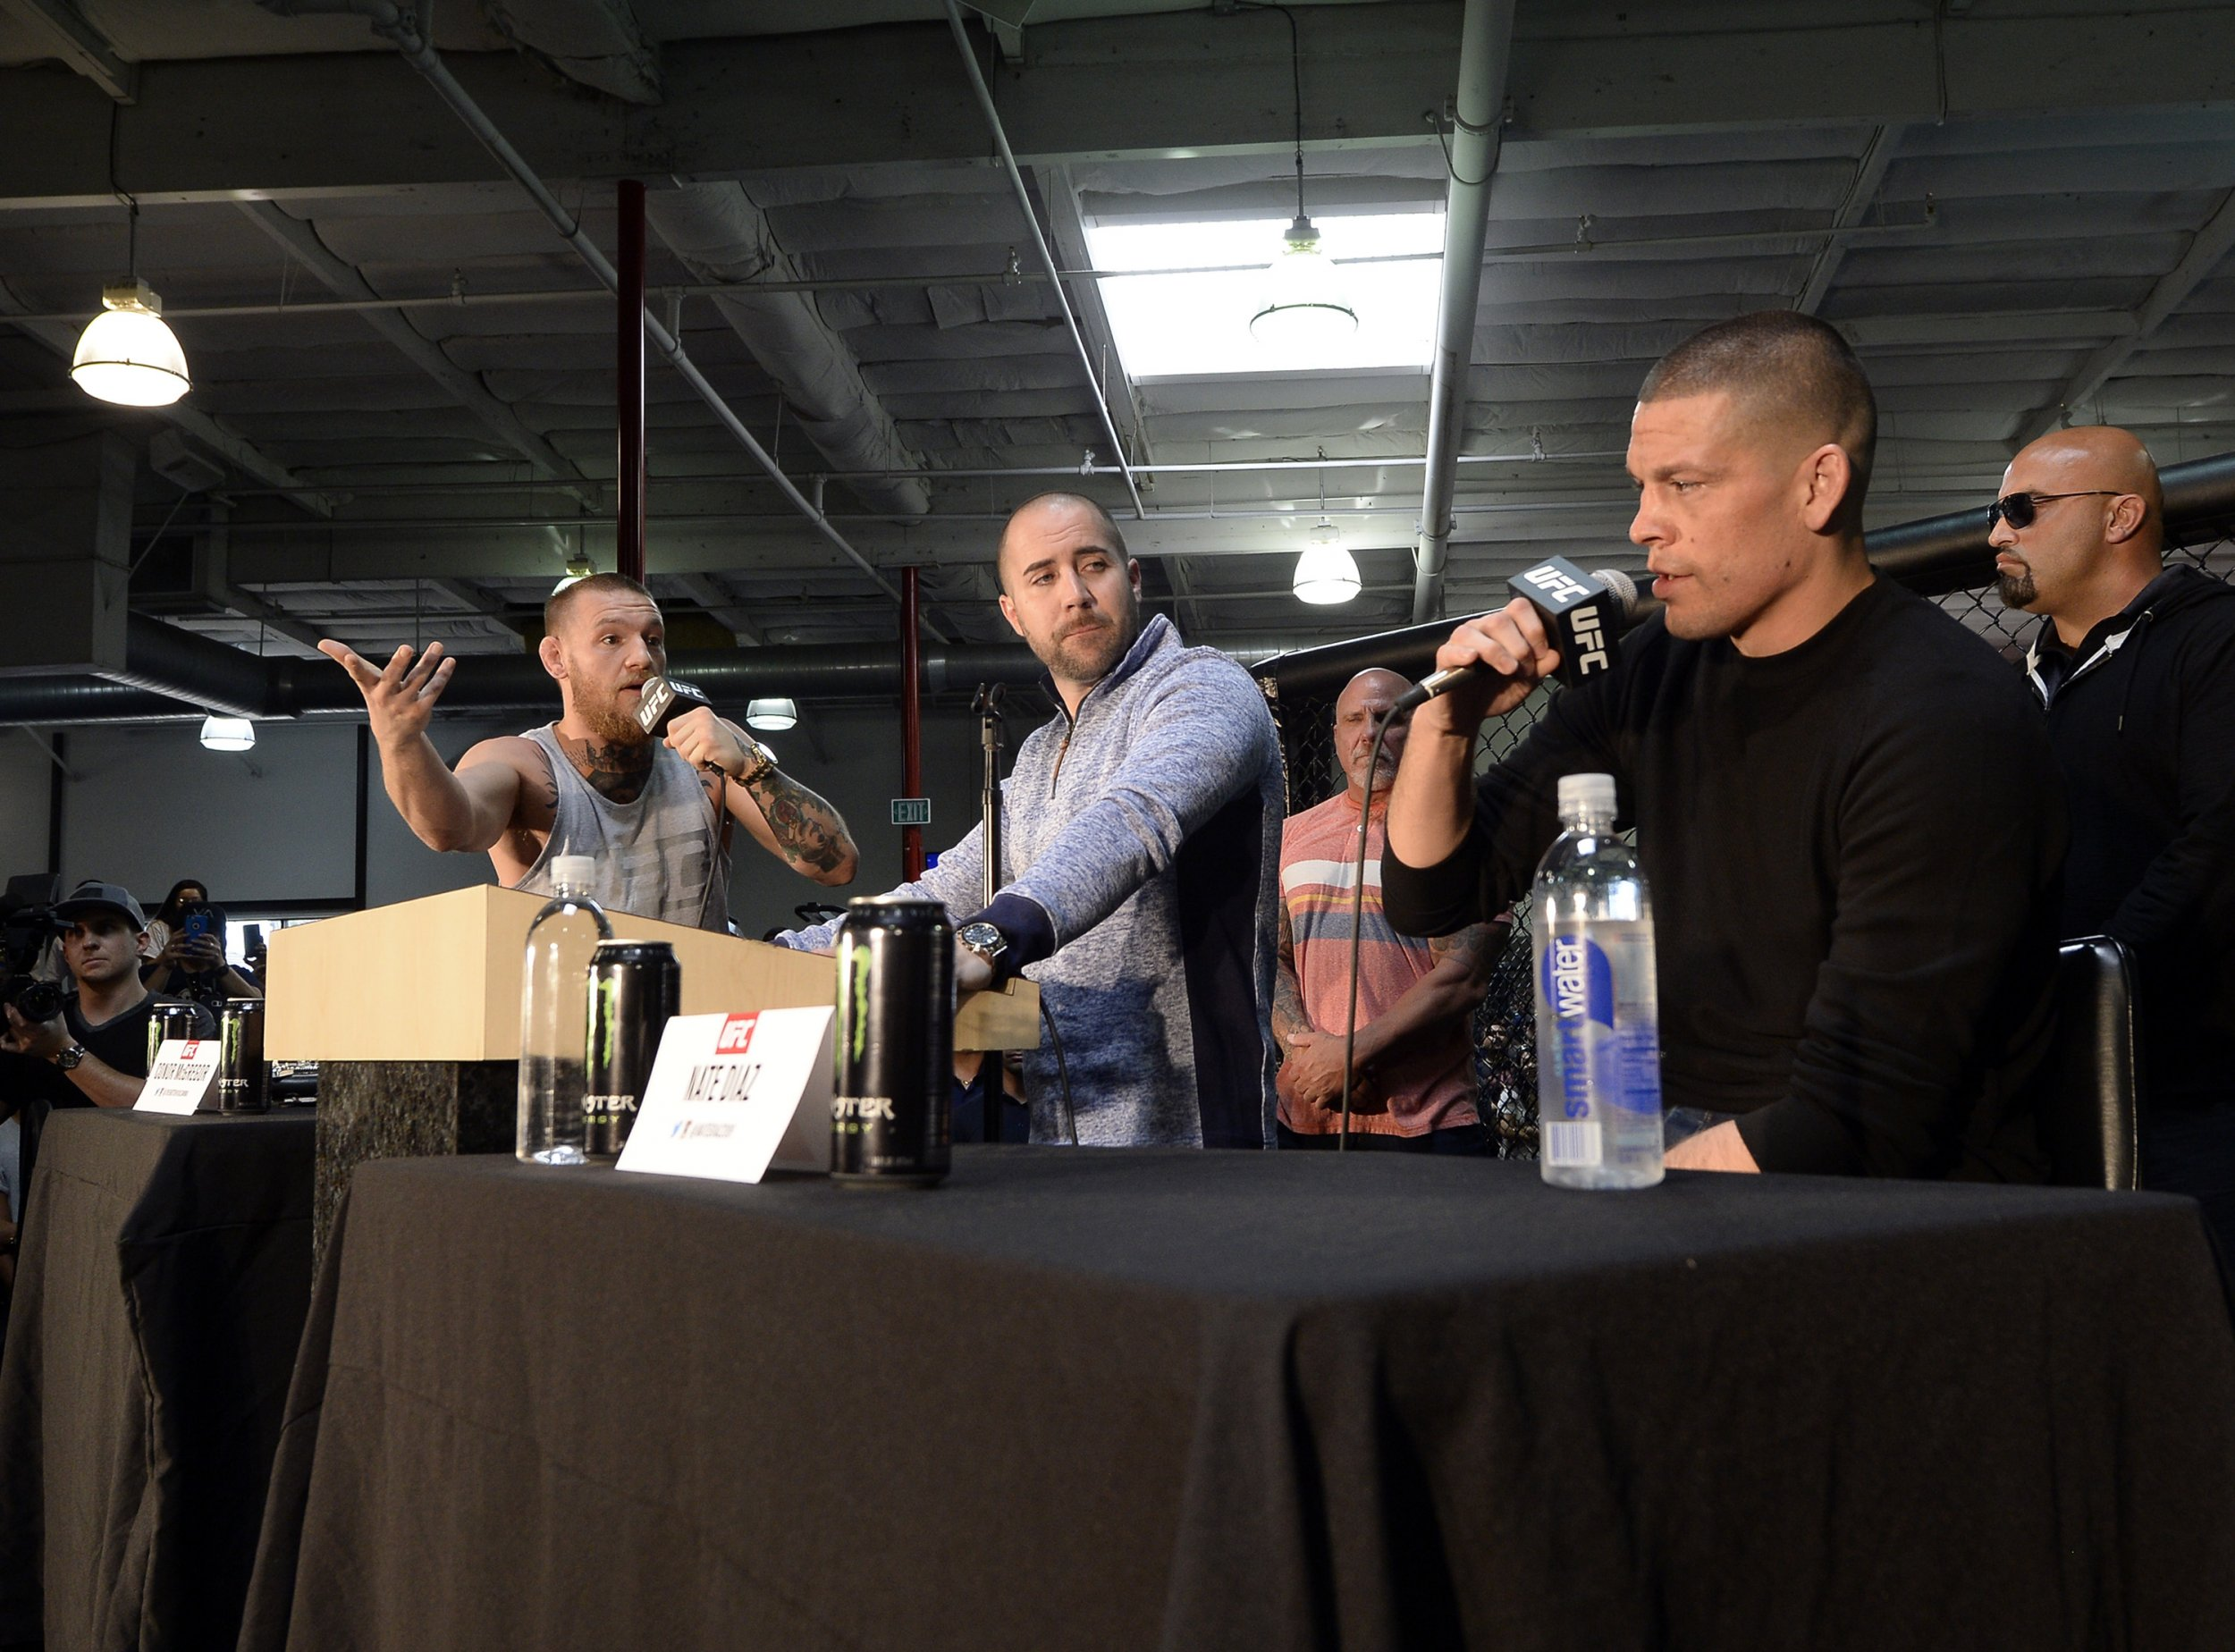 Conor McGregor and Nate Diaz clashed on Wednesday at a UFC 196 press conference.